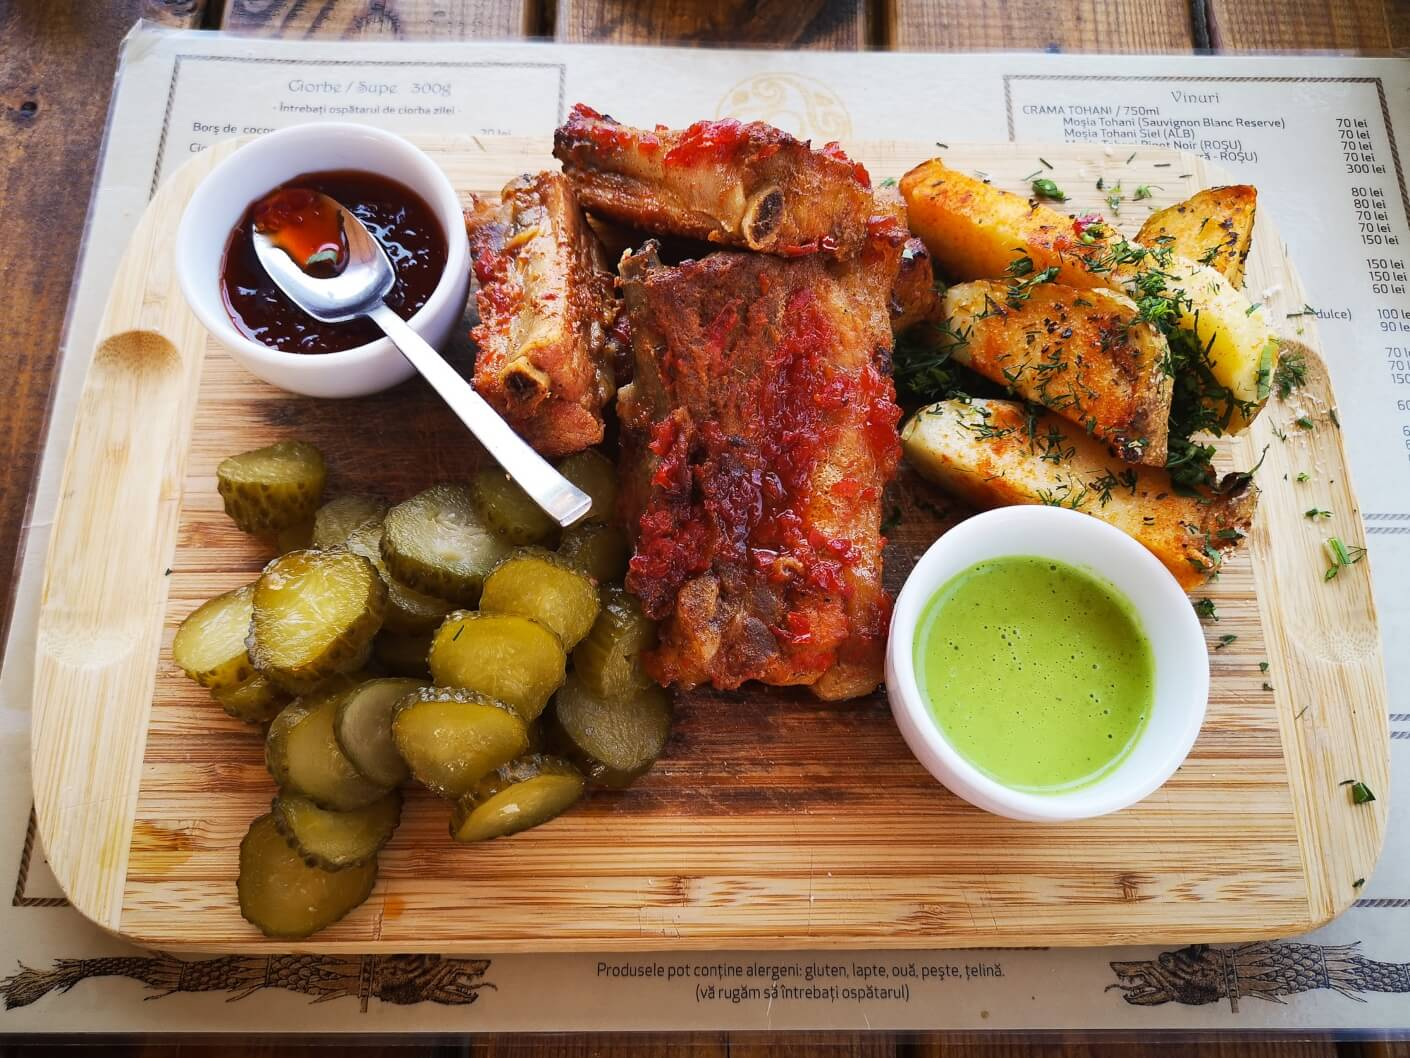 Pork ribs with potatoes, pickles and hot pepper jam